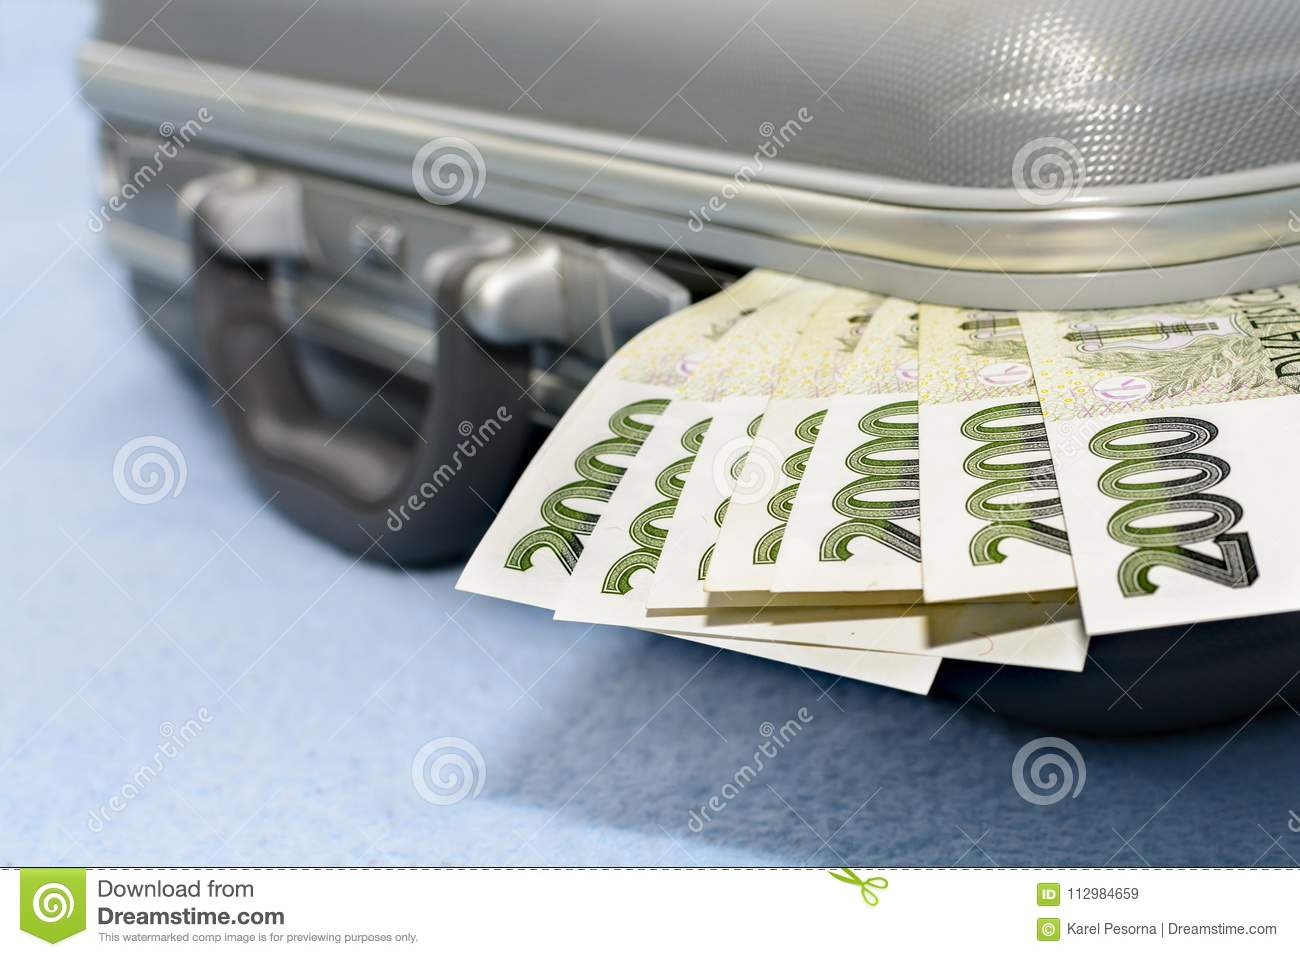 Czech money scratched in a gray metal suitcase